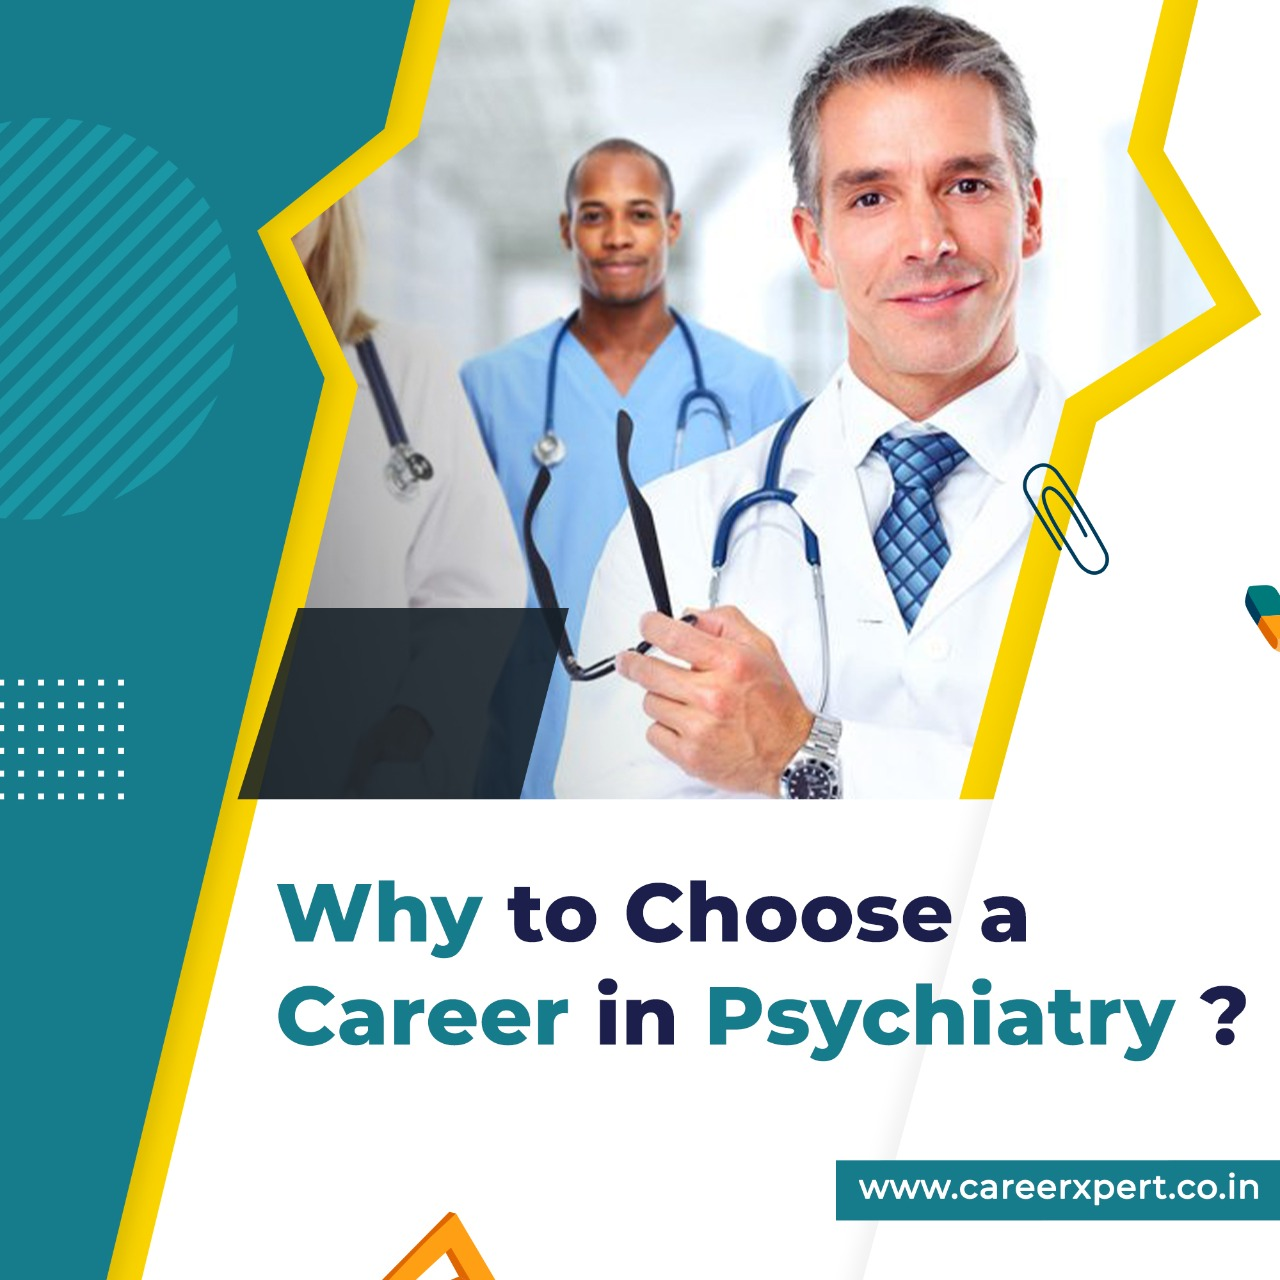 Why to choose a career in psychiatry